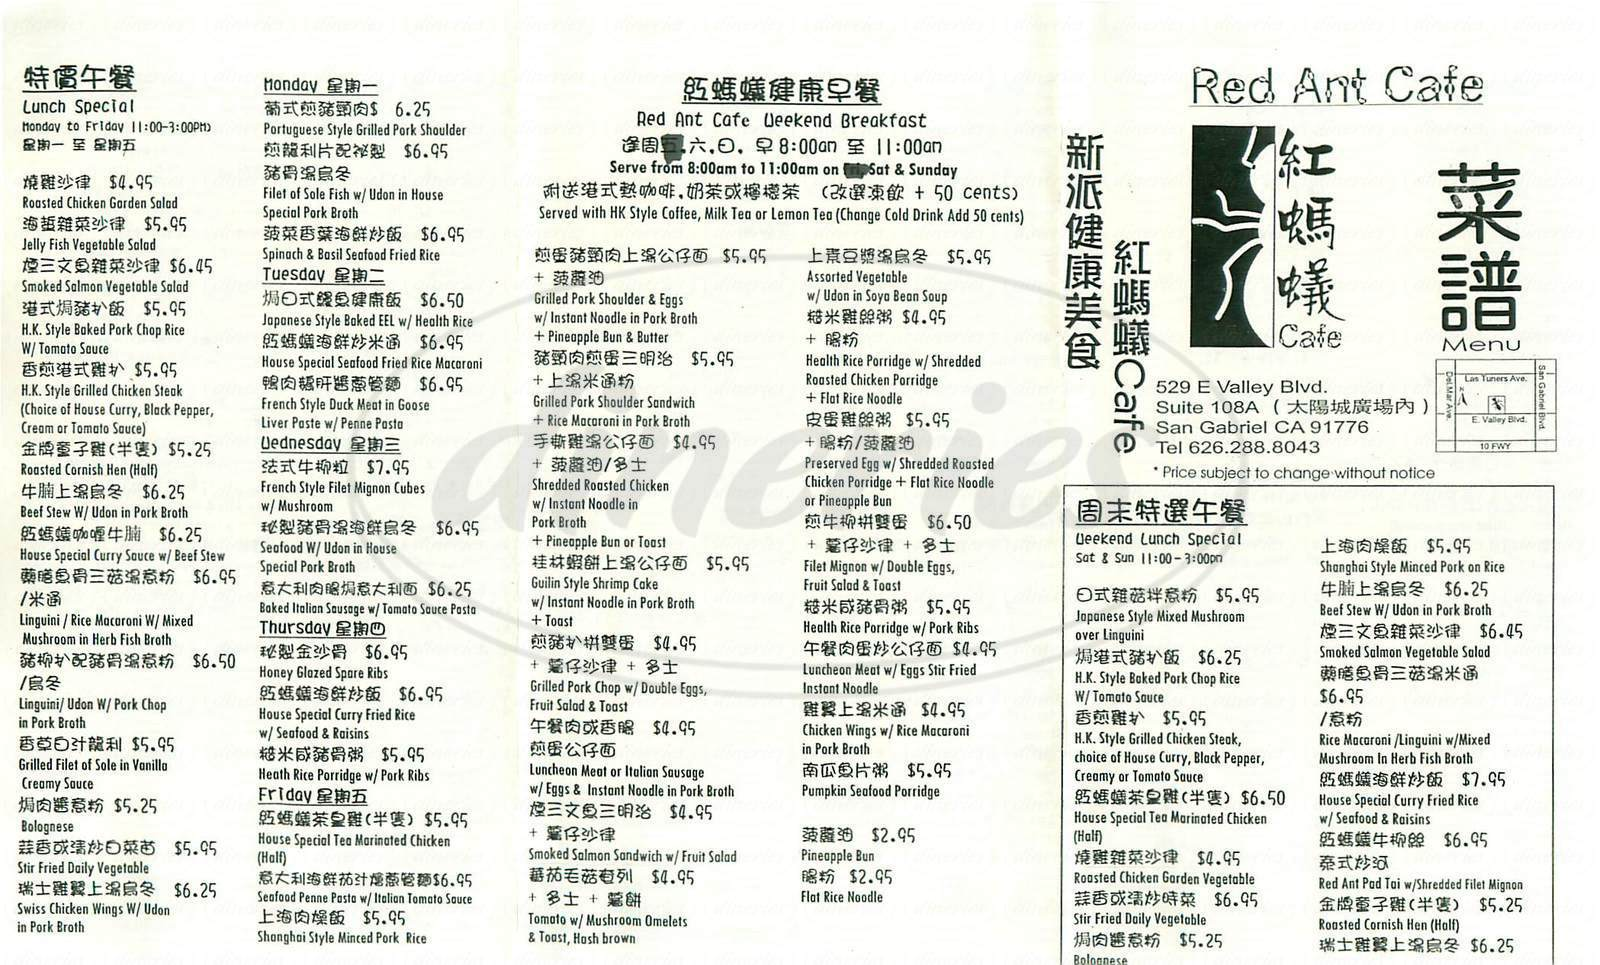 menu for Red Ant Cafe